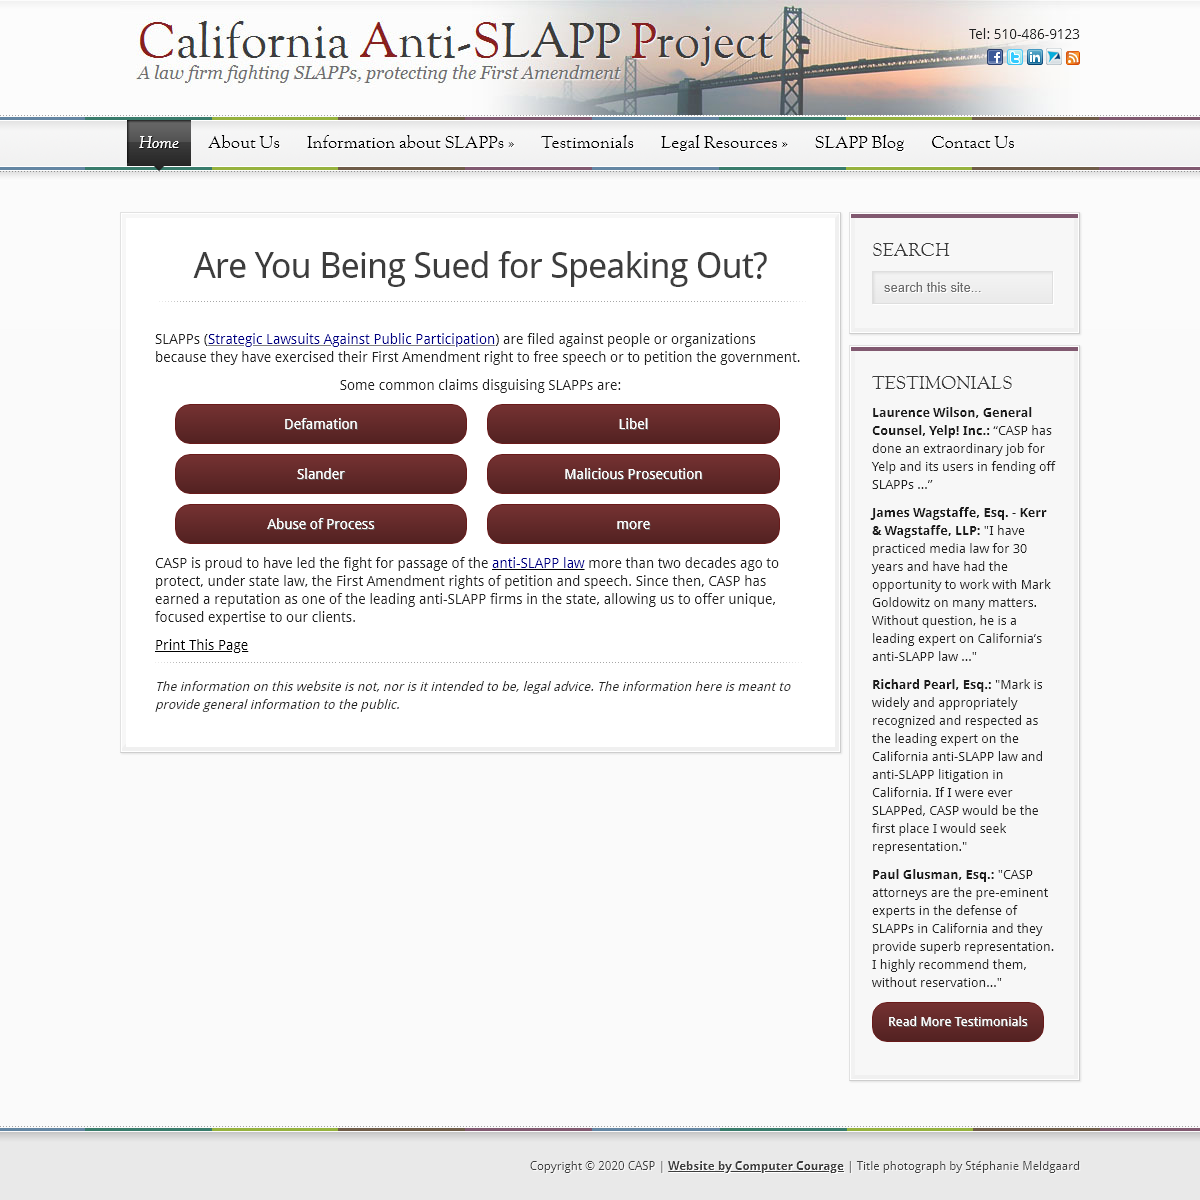 California Lawyers Fighting SLAPPs - Defamation, Malicious Prosecution, Abuse of Process Lawsuits